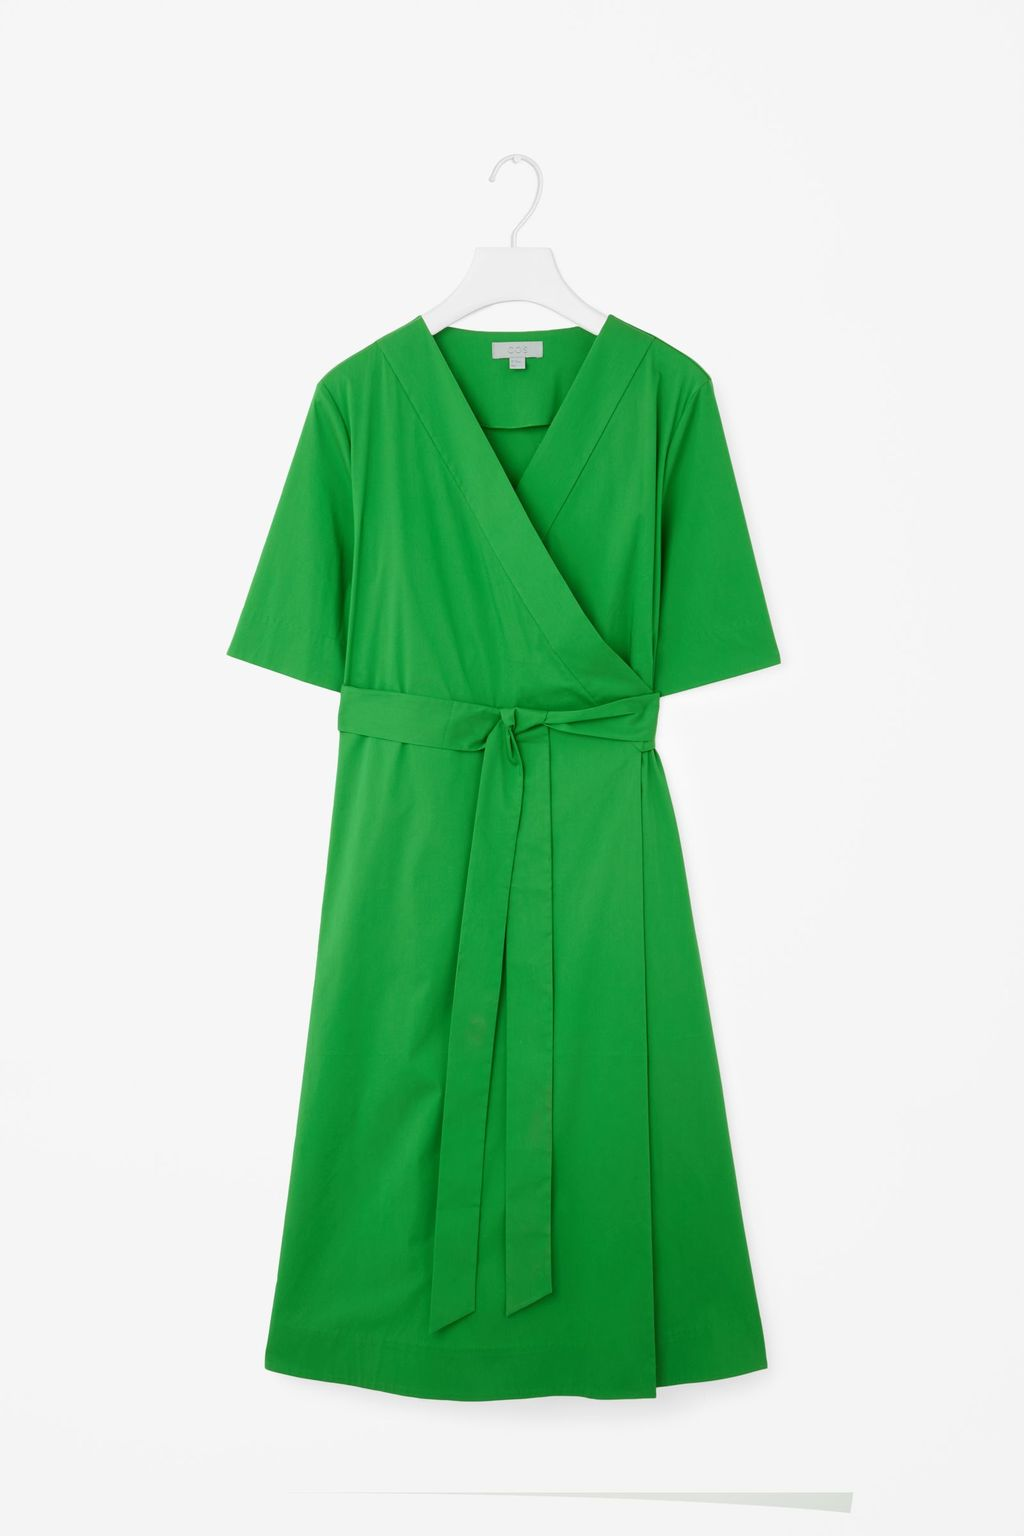 Wrap Over Dress - style: faux wrap/wrap; neckline: v-neck; pattern: plain; predominant colour: emerald green; occasions: evening; length: on the knee; fit: body skimming; fibres: cotton - stretch; sleeve length: short sleeve; sleeve style: standard; pattern type: fabric; texture group: other - light to midweight; season: s/s 2016